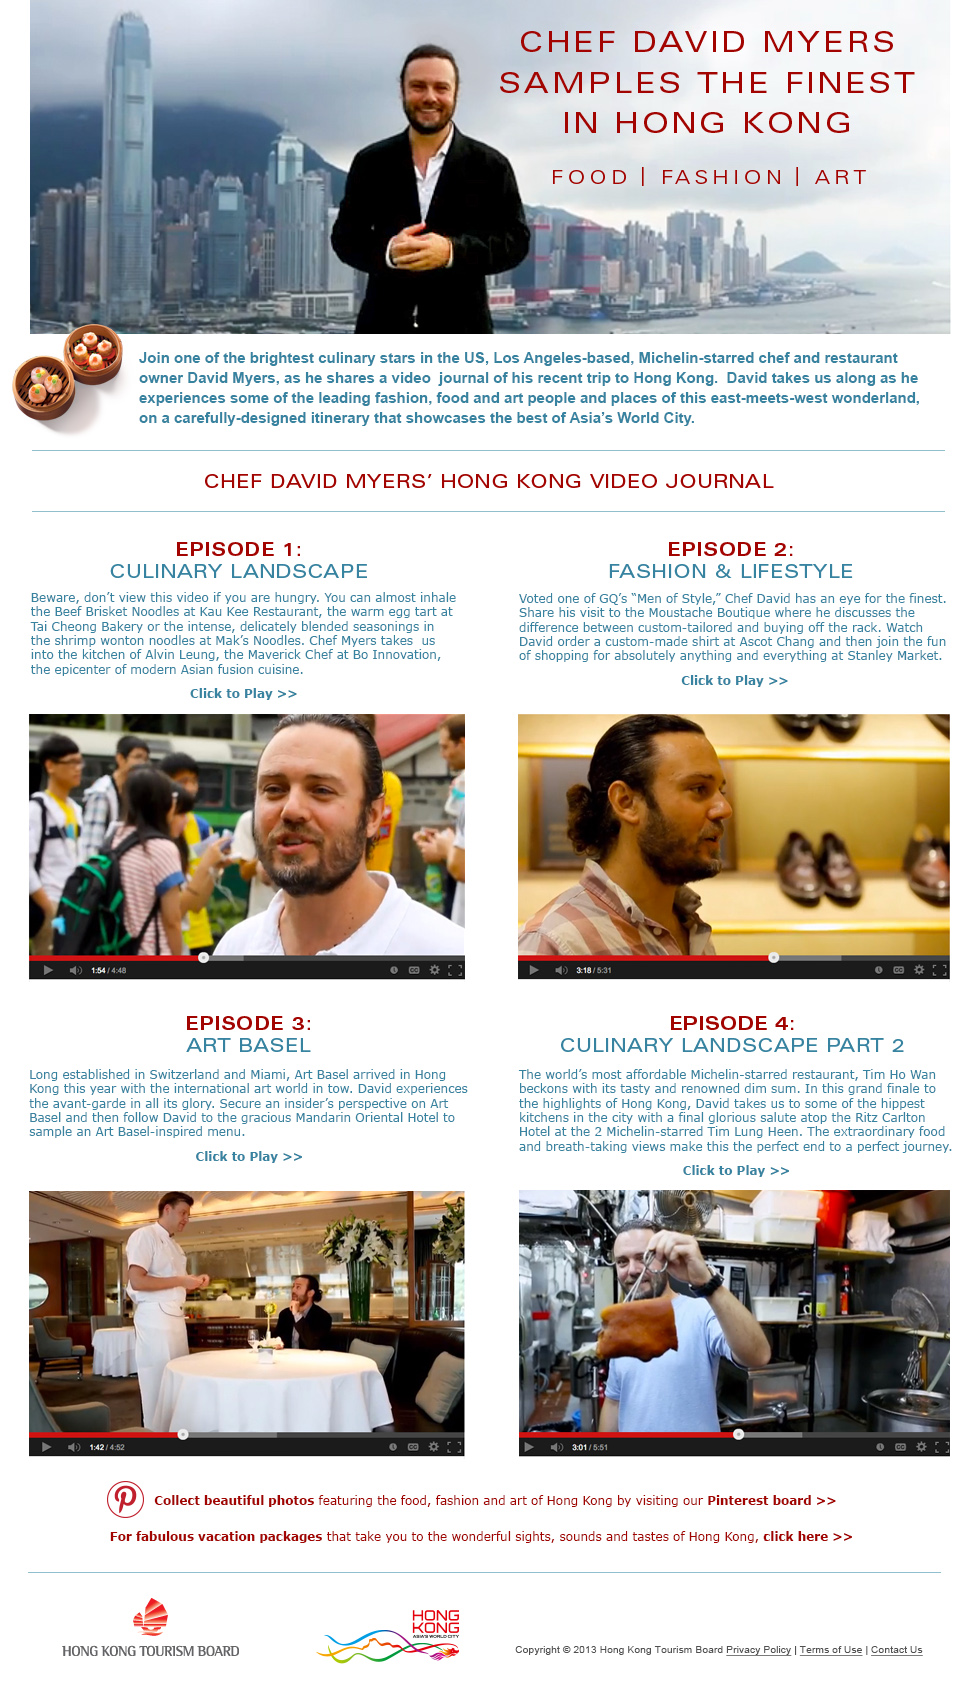 Hong Kong Tourism Board landing page featuring multiple Chef David Myers videos